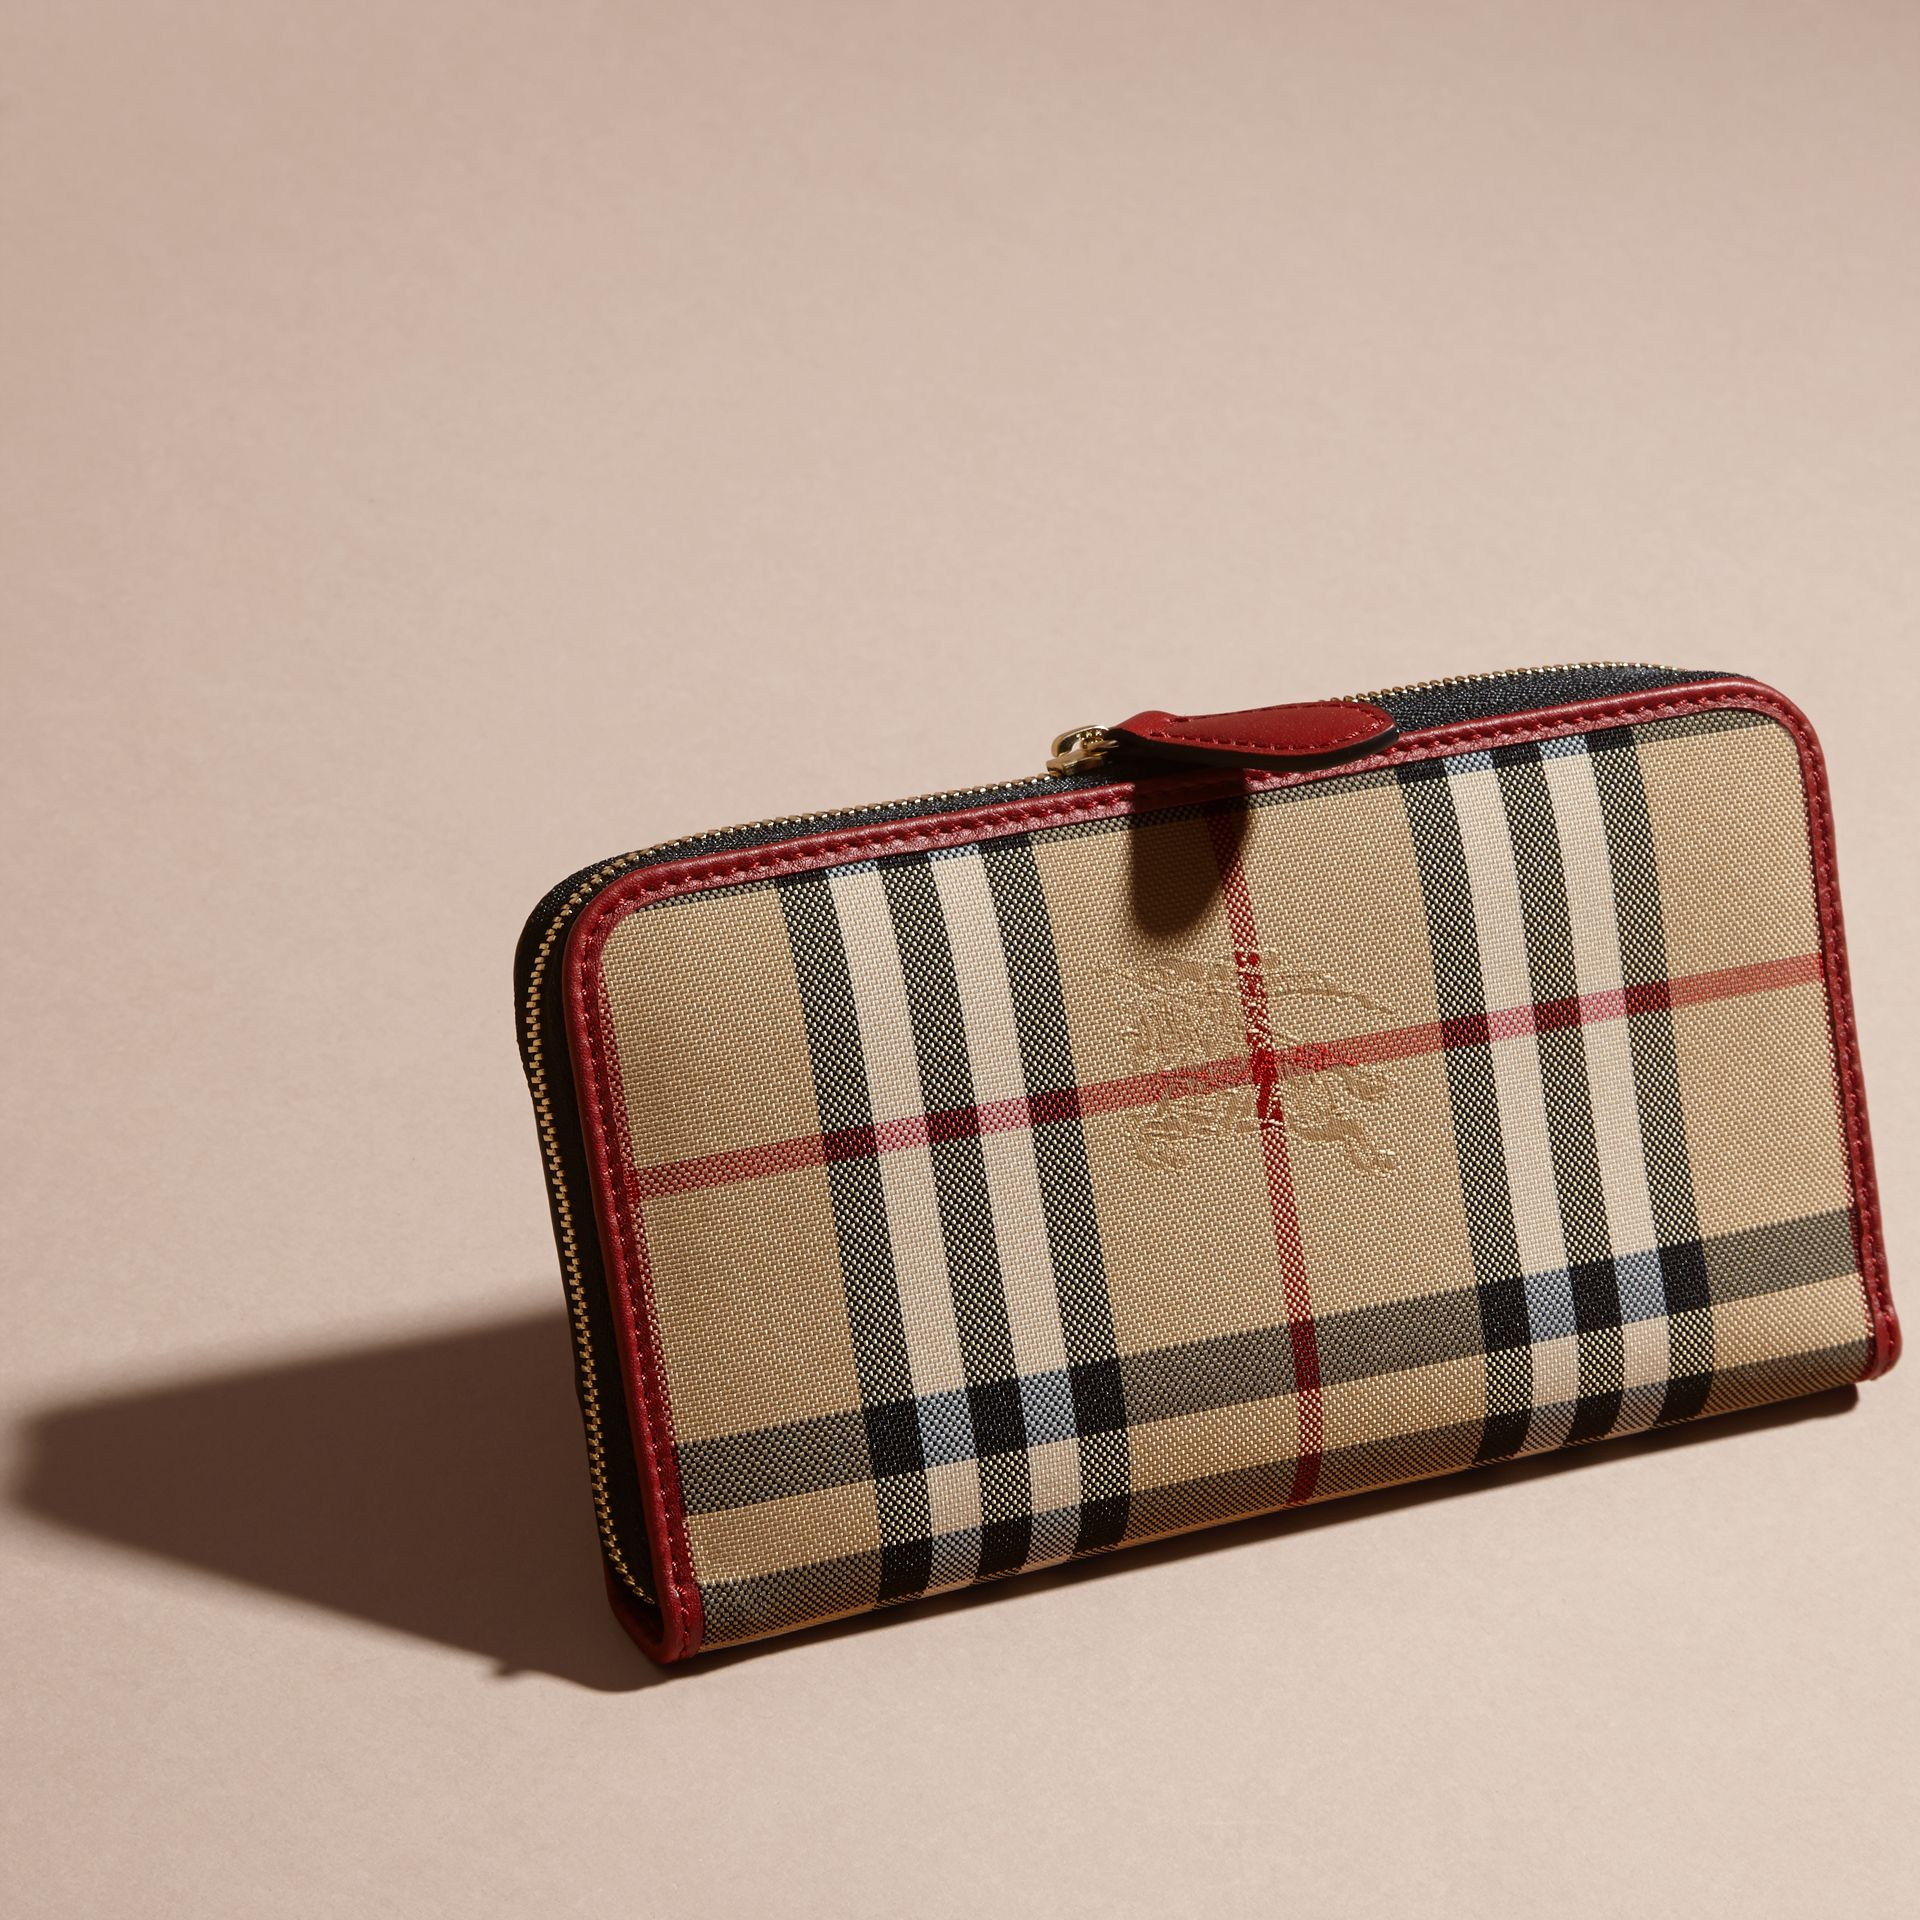 Horseferry Check and Leather Ziparound Wallet in Parade Red - Women | Burberry Canada - gallery image 4